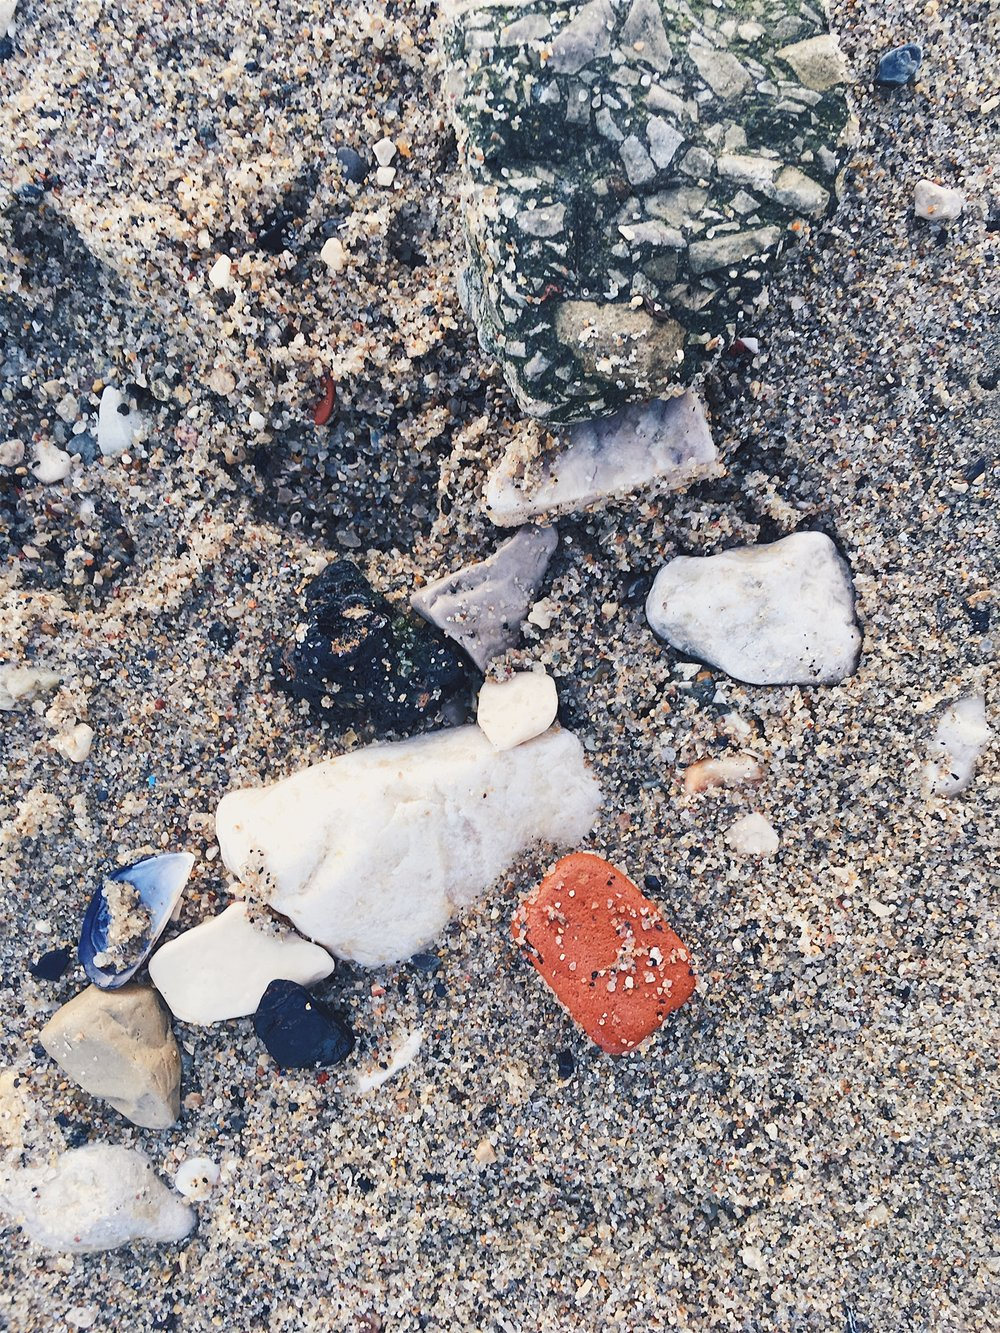 A closeup of treasures in the sand: pieces of brick, tile, shells, cement, and stones;Also a piece of conglomerate